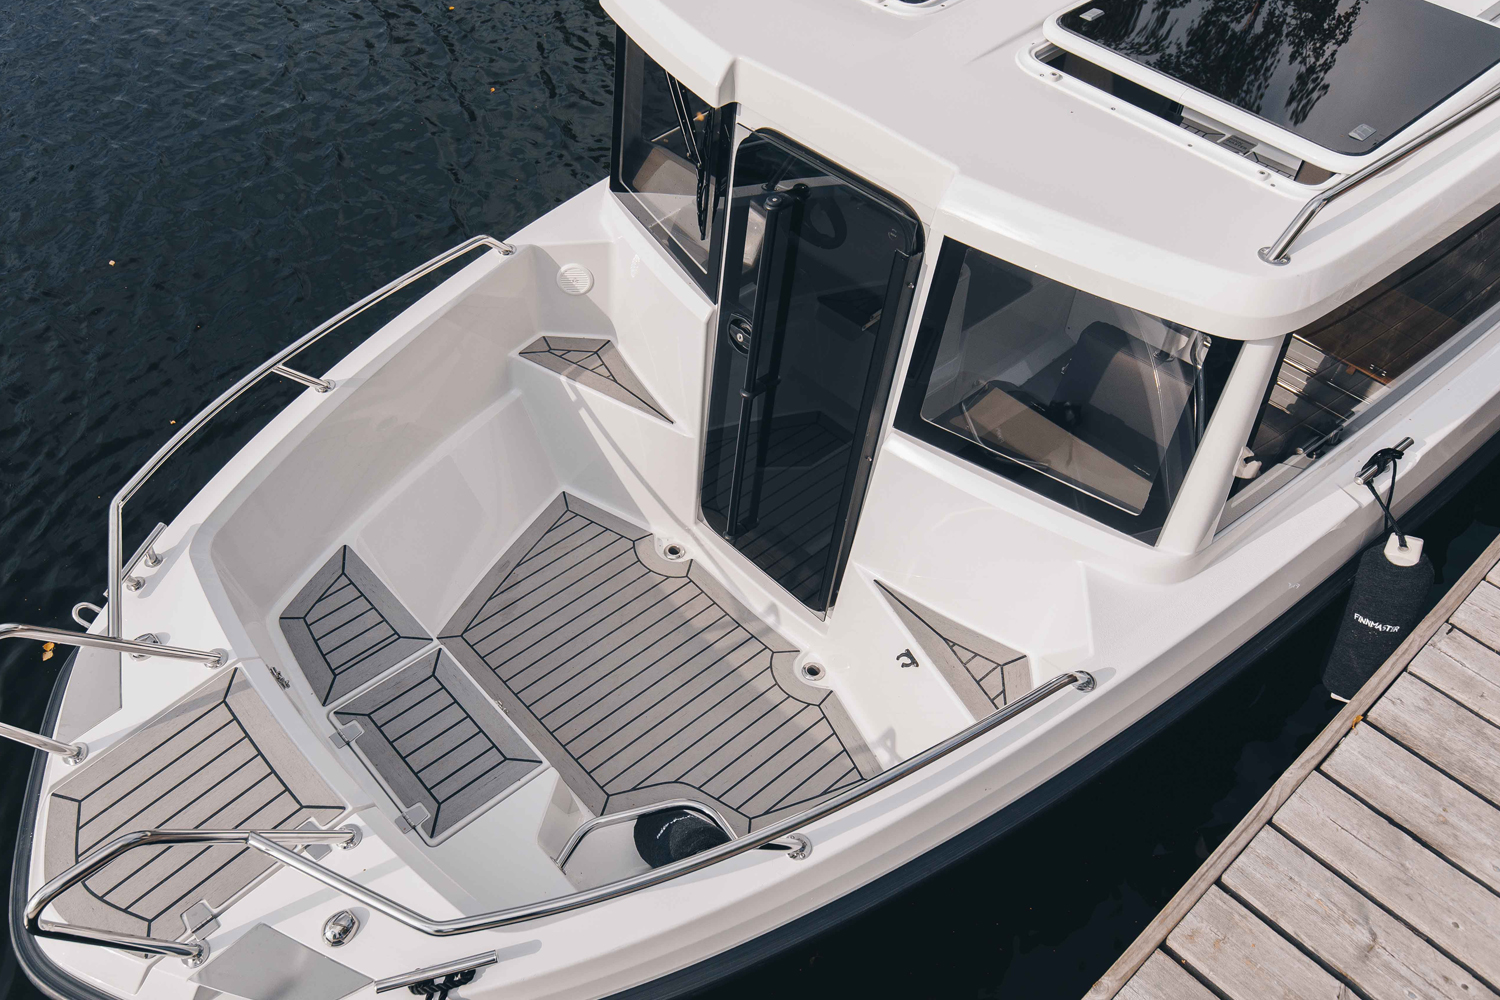 Finnmaster P6 - A modern cabin boat that surpasses your expectations